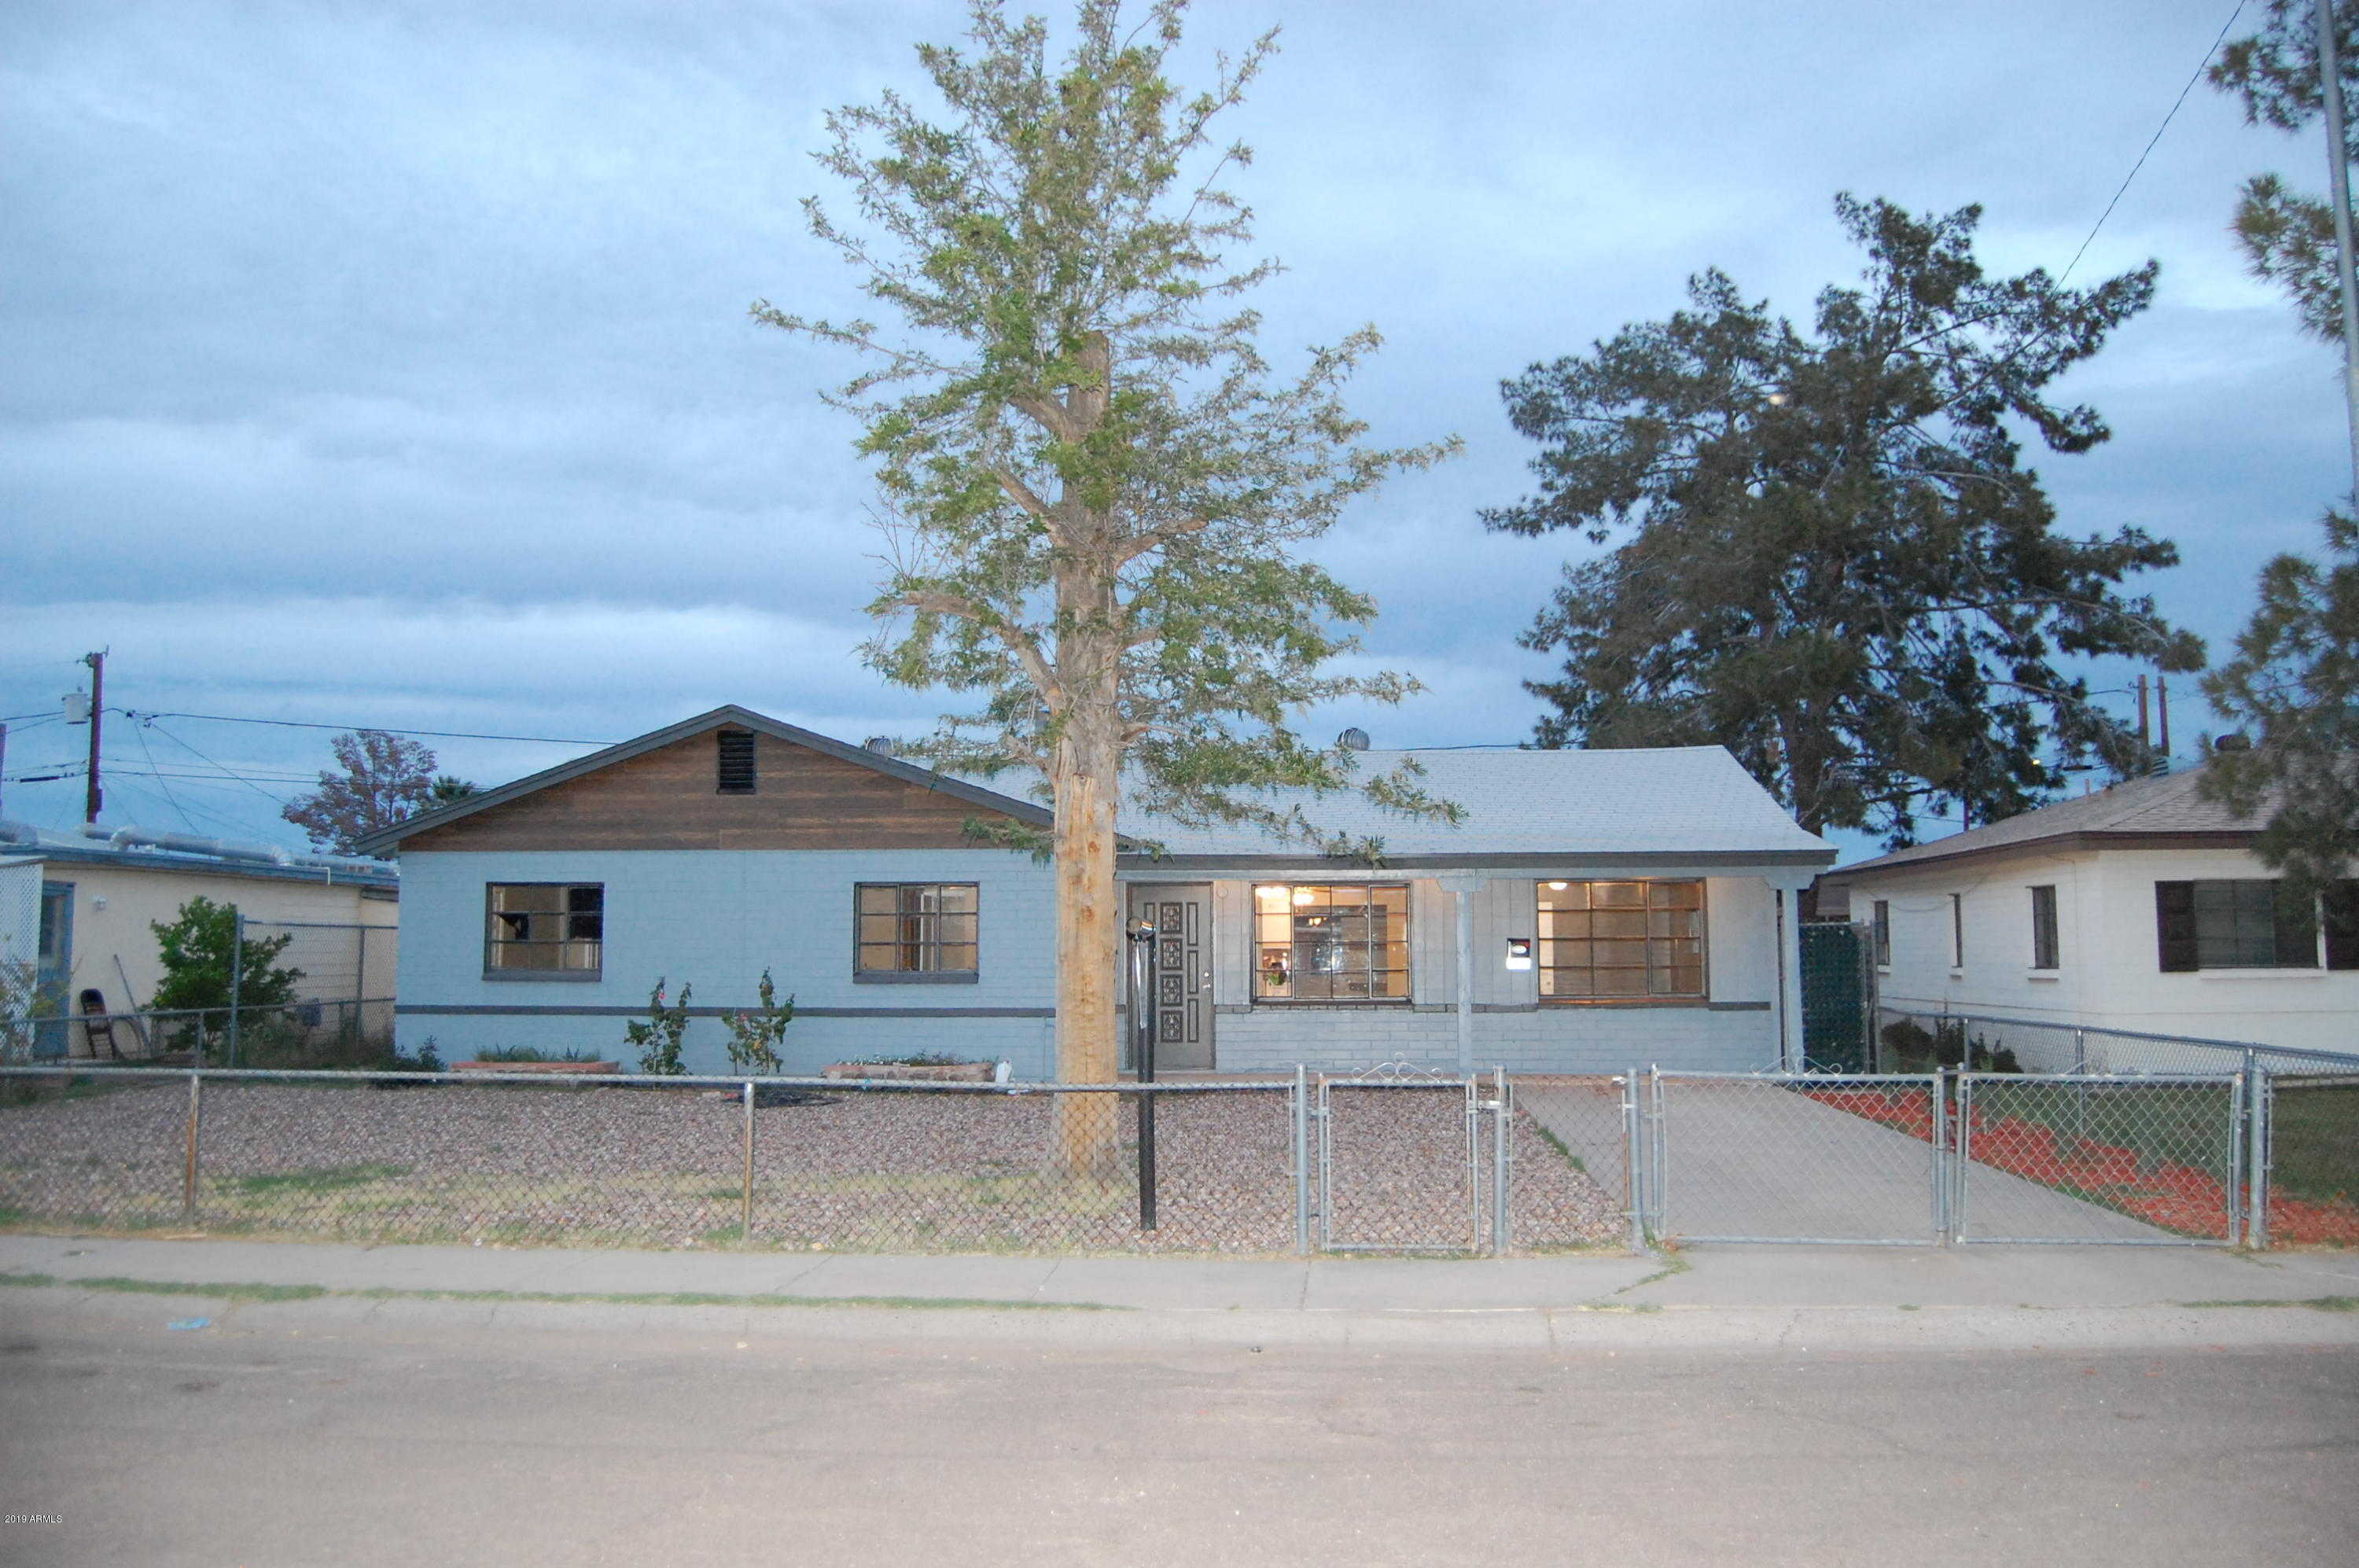 $224,900 - 5Br/3Ba - Home for Sale in Cavalier Dale, Glendale